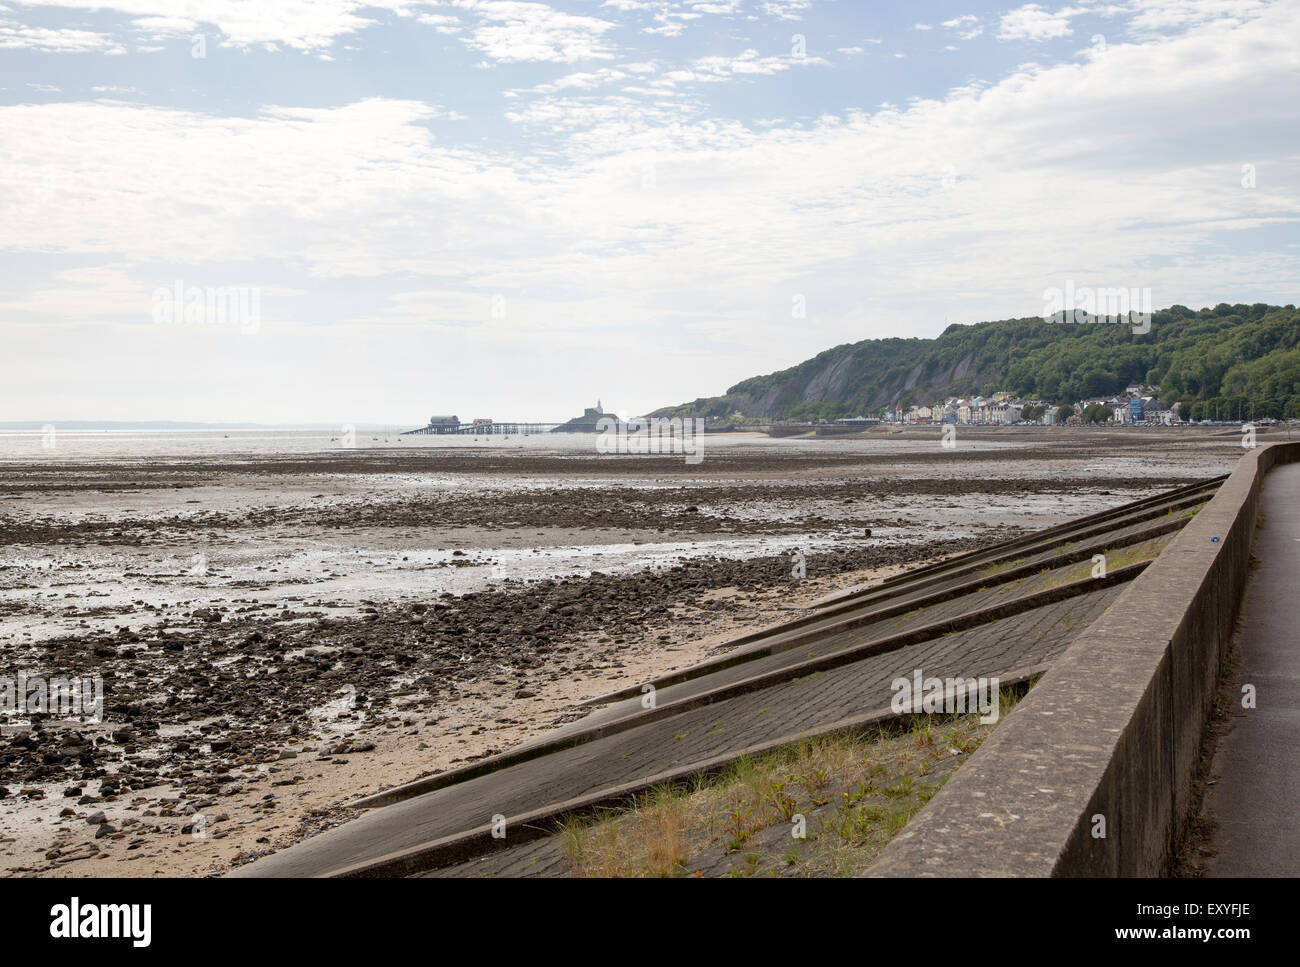 Wide beach at low tide, Swansea bay, Mumbles, Gower peninsula, South Wales, UK - Stock Image